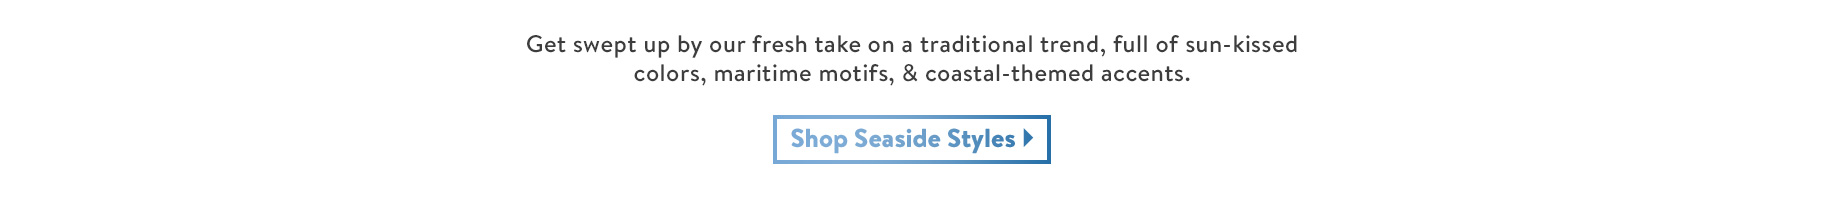 Get swept up by our fresh take on a traditional trend, full of sun-kissed colors, maritime motifs, & coastal-themed accents. Shop Seaside Styles.